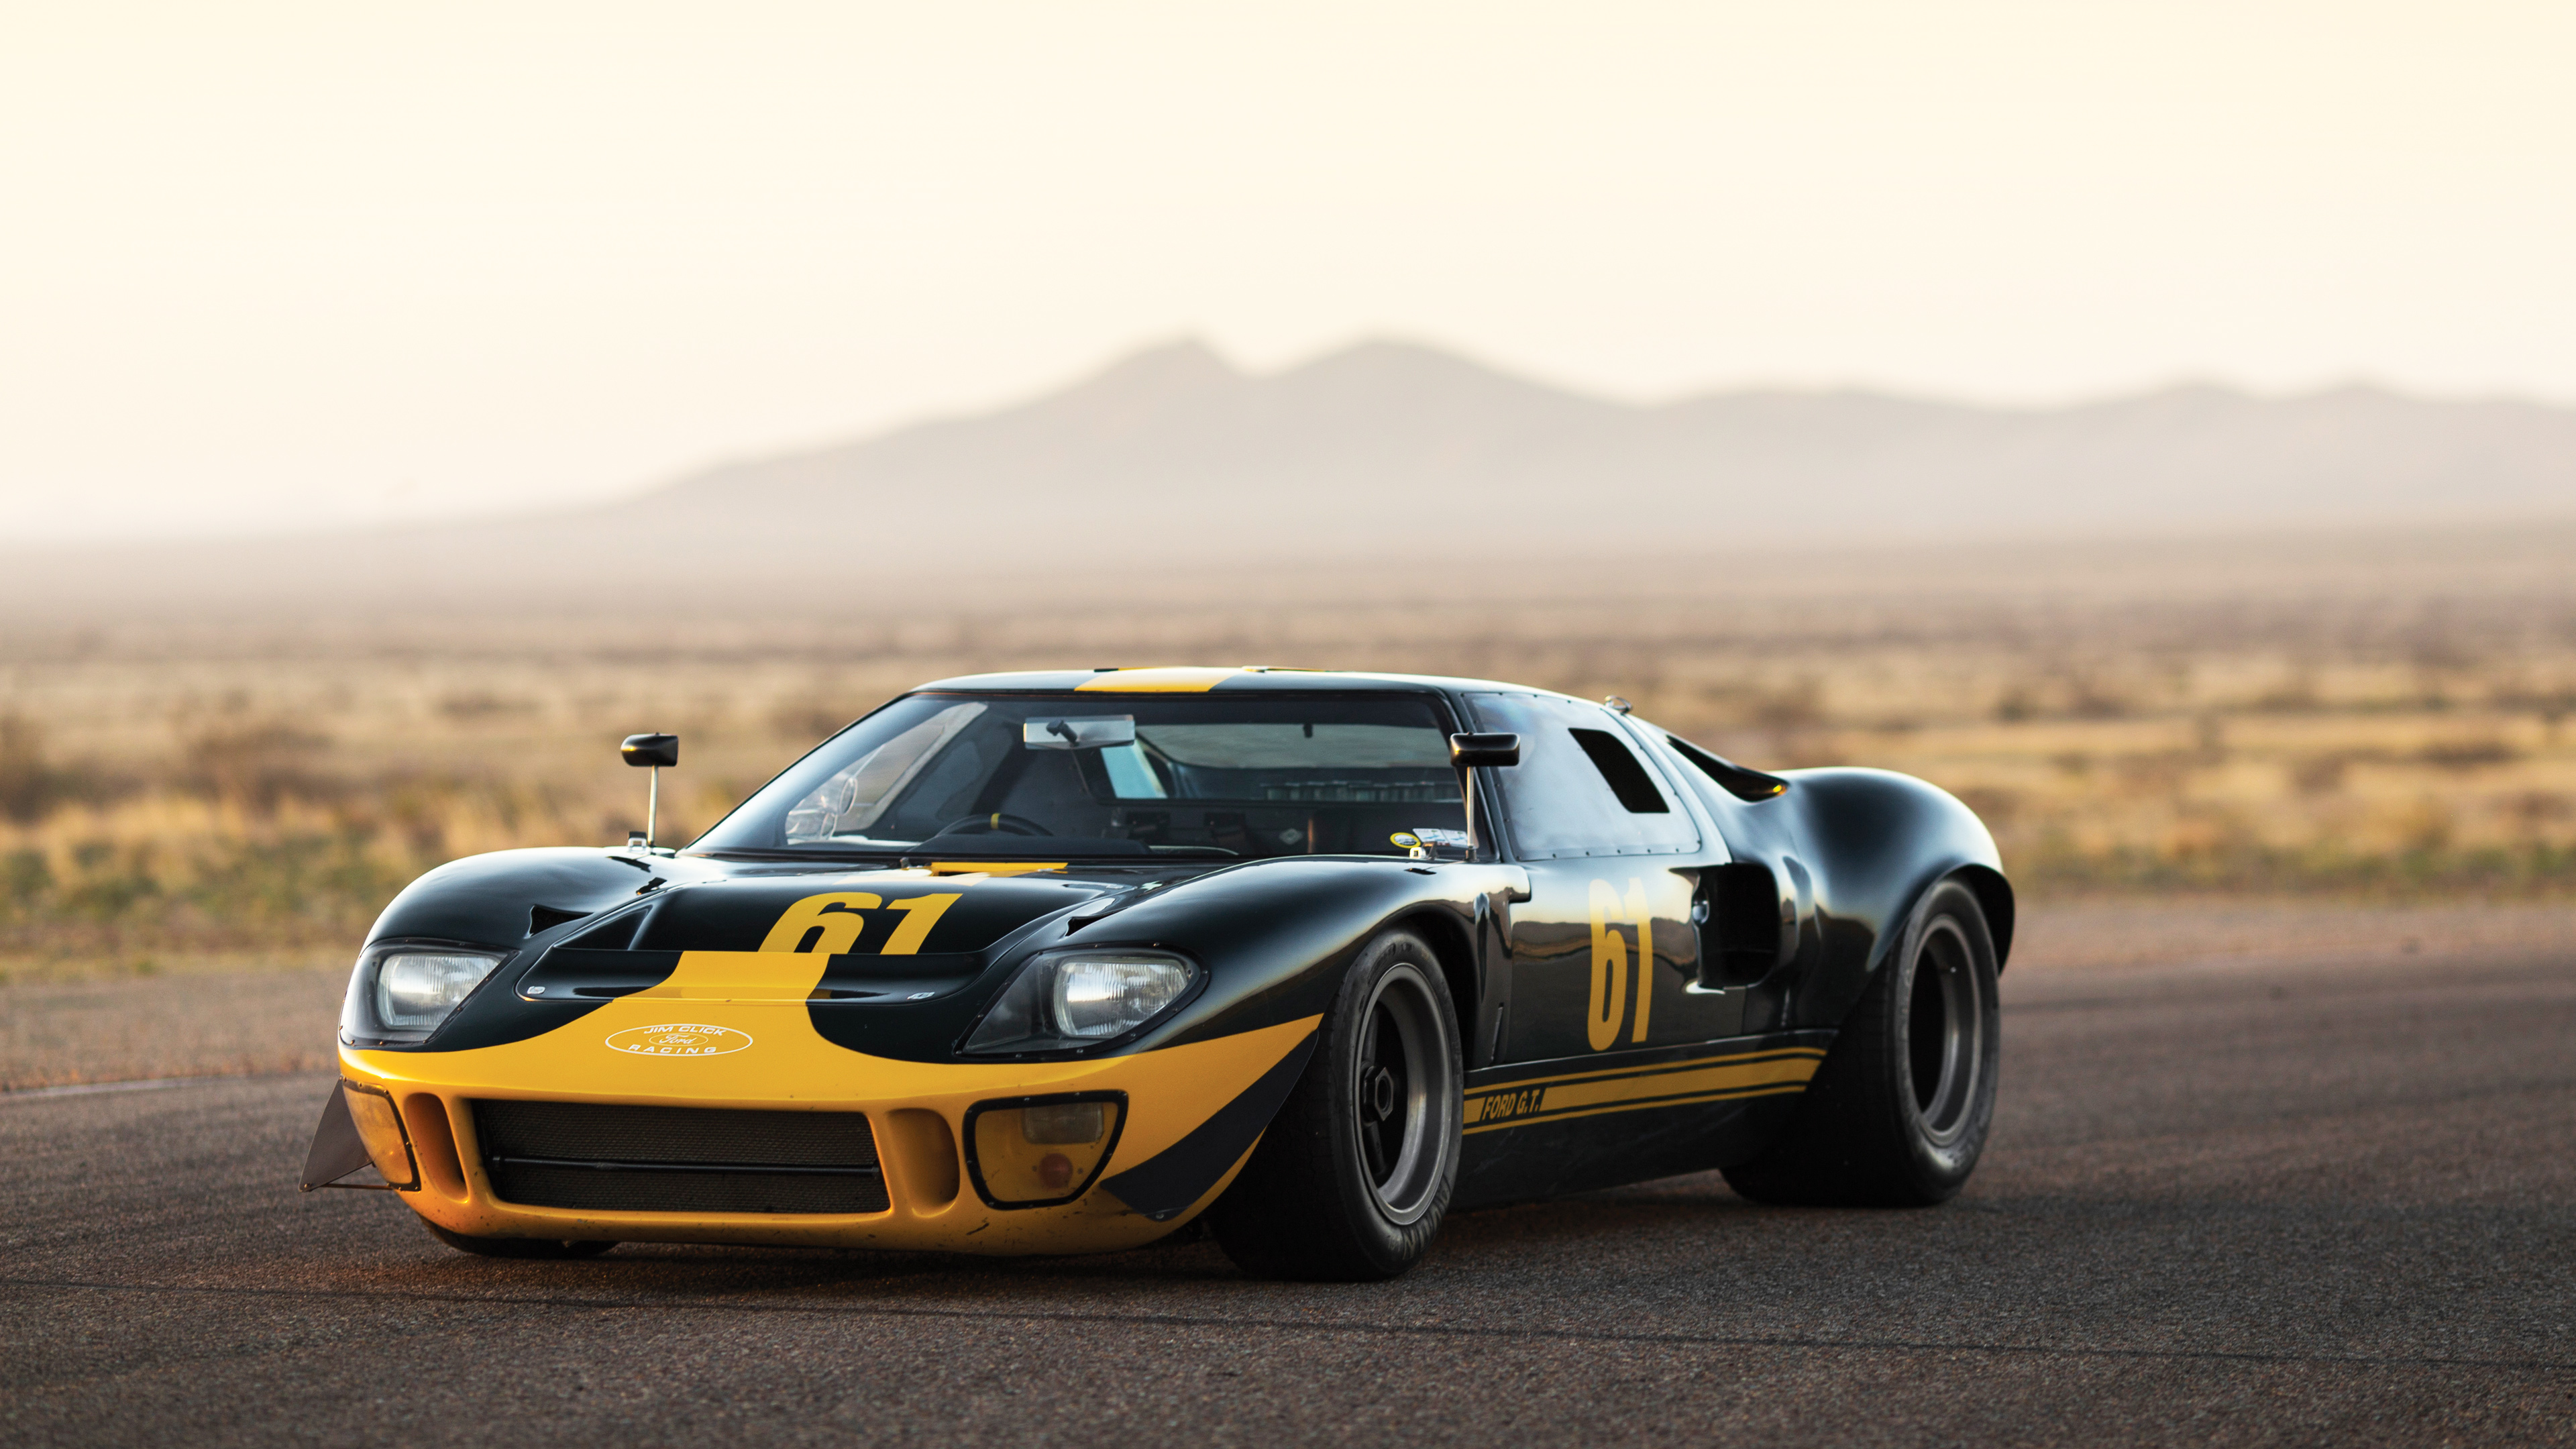 1966 ford gt40 4k wallpaper hd car wallpapers id 6794 - Wallpaper hd 4k car ...